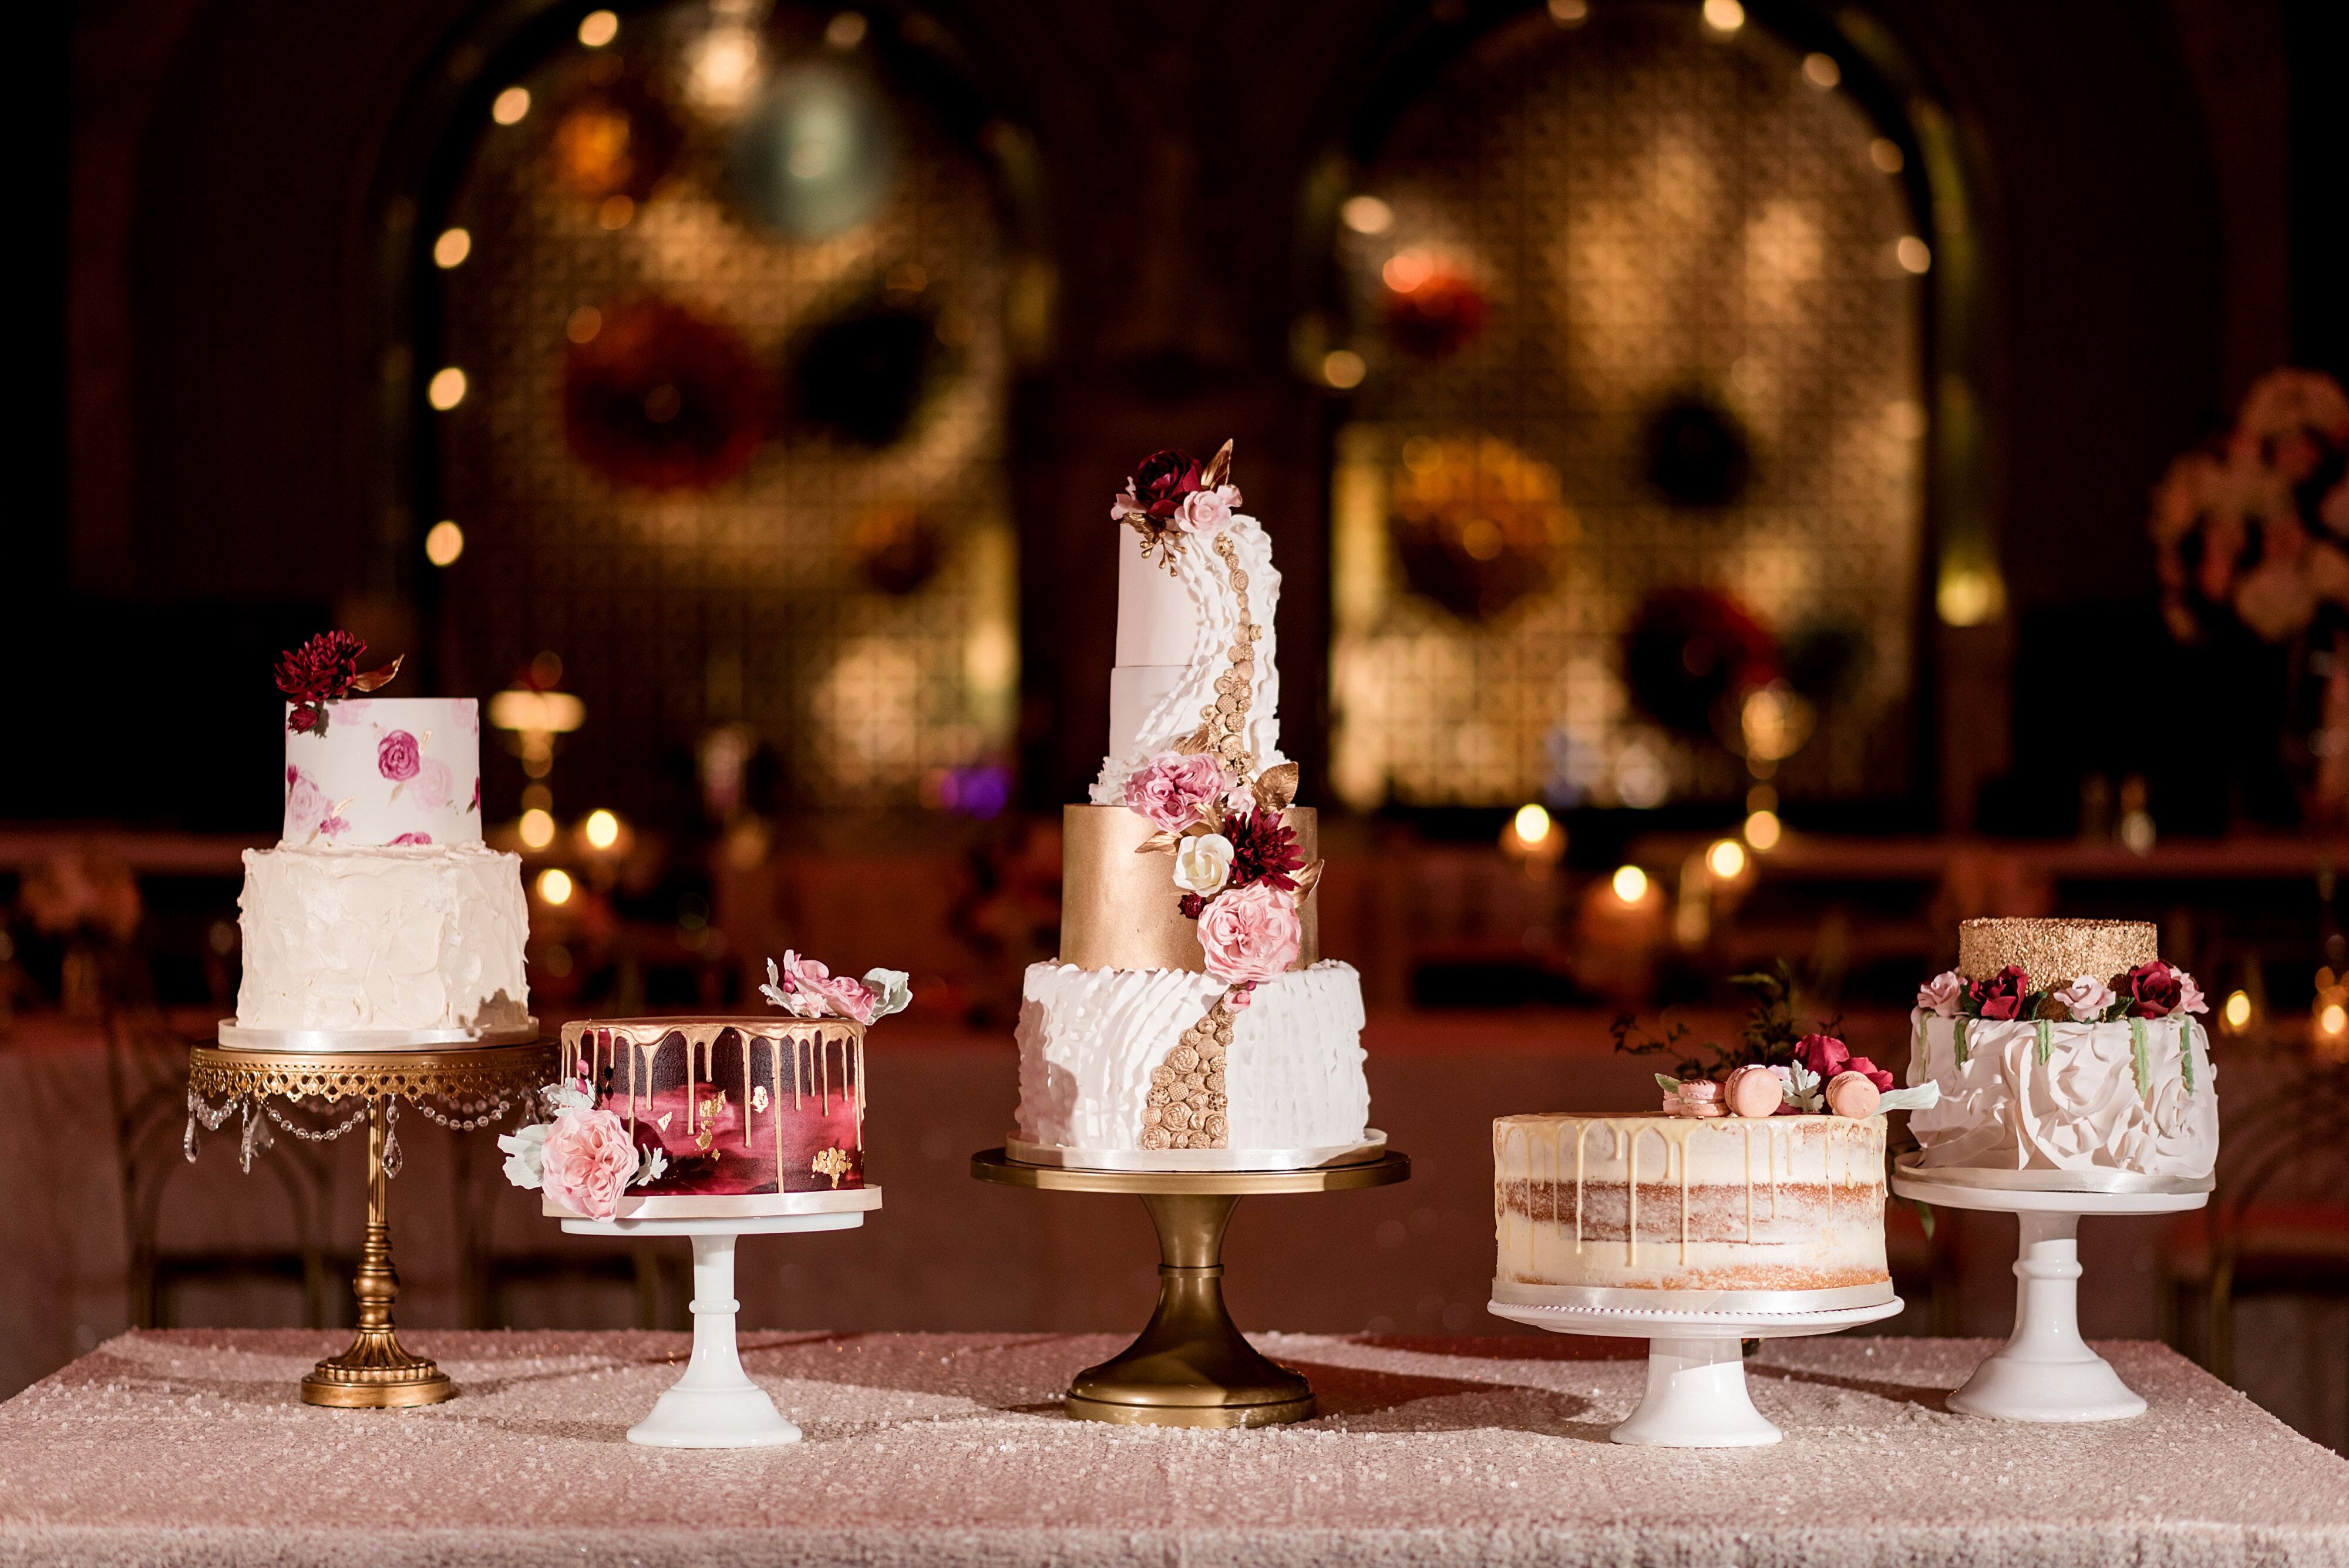 Red and Gold Wedding Cake Display